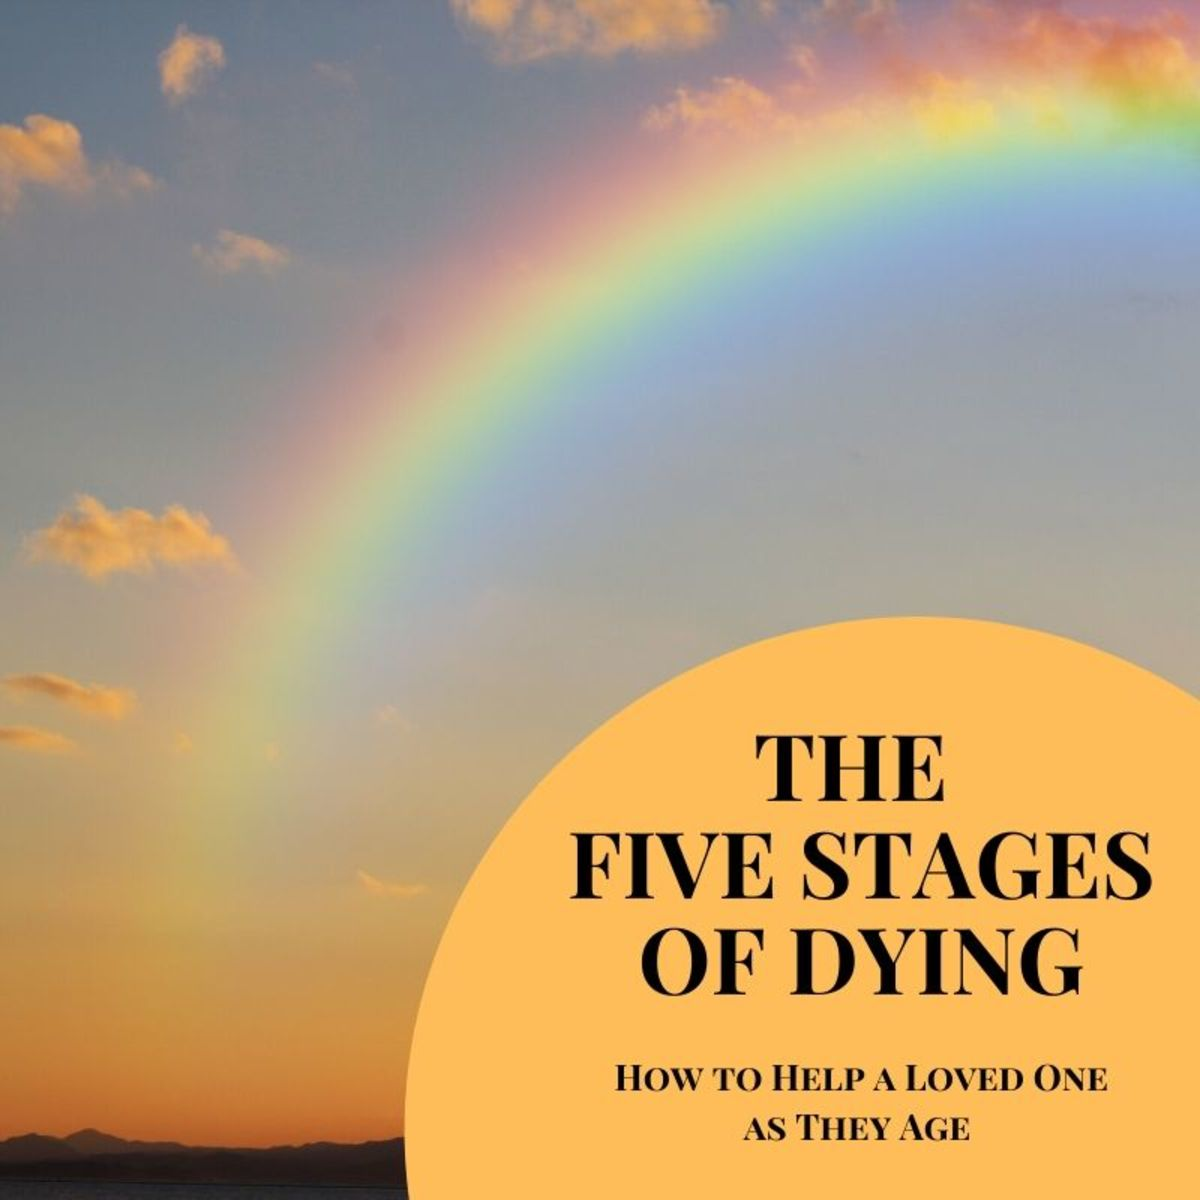 The stages of dying checklist can be used to understand how to deal with a relative's needs as they move through the dying process.